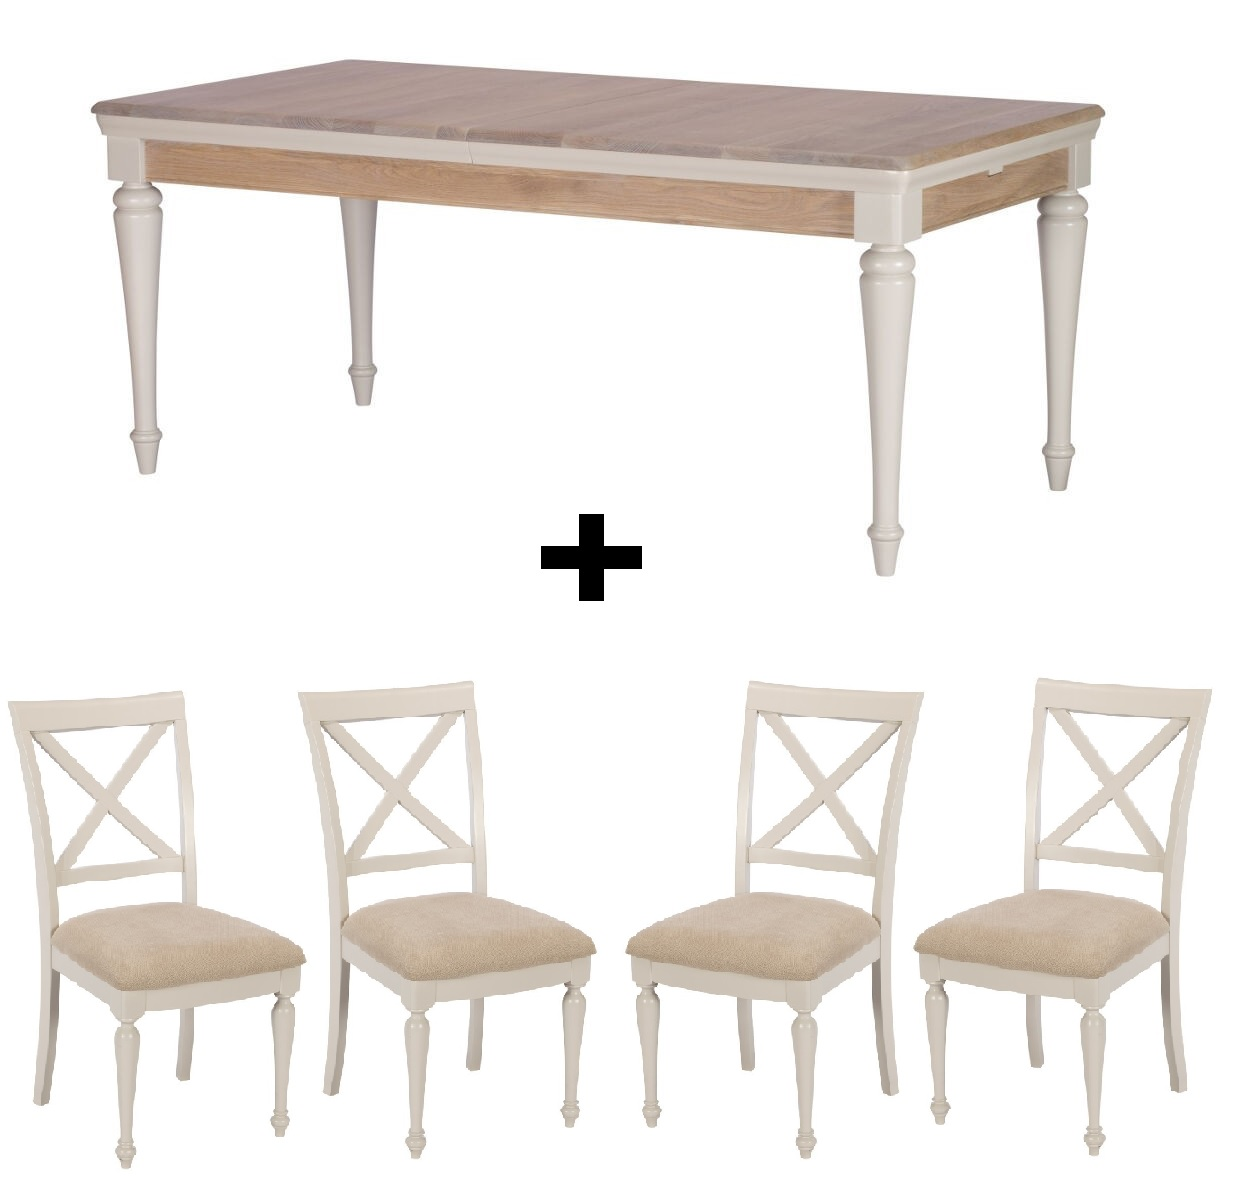 Carlisle Dining Set - Extending Table + 4 Chairs